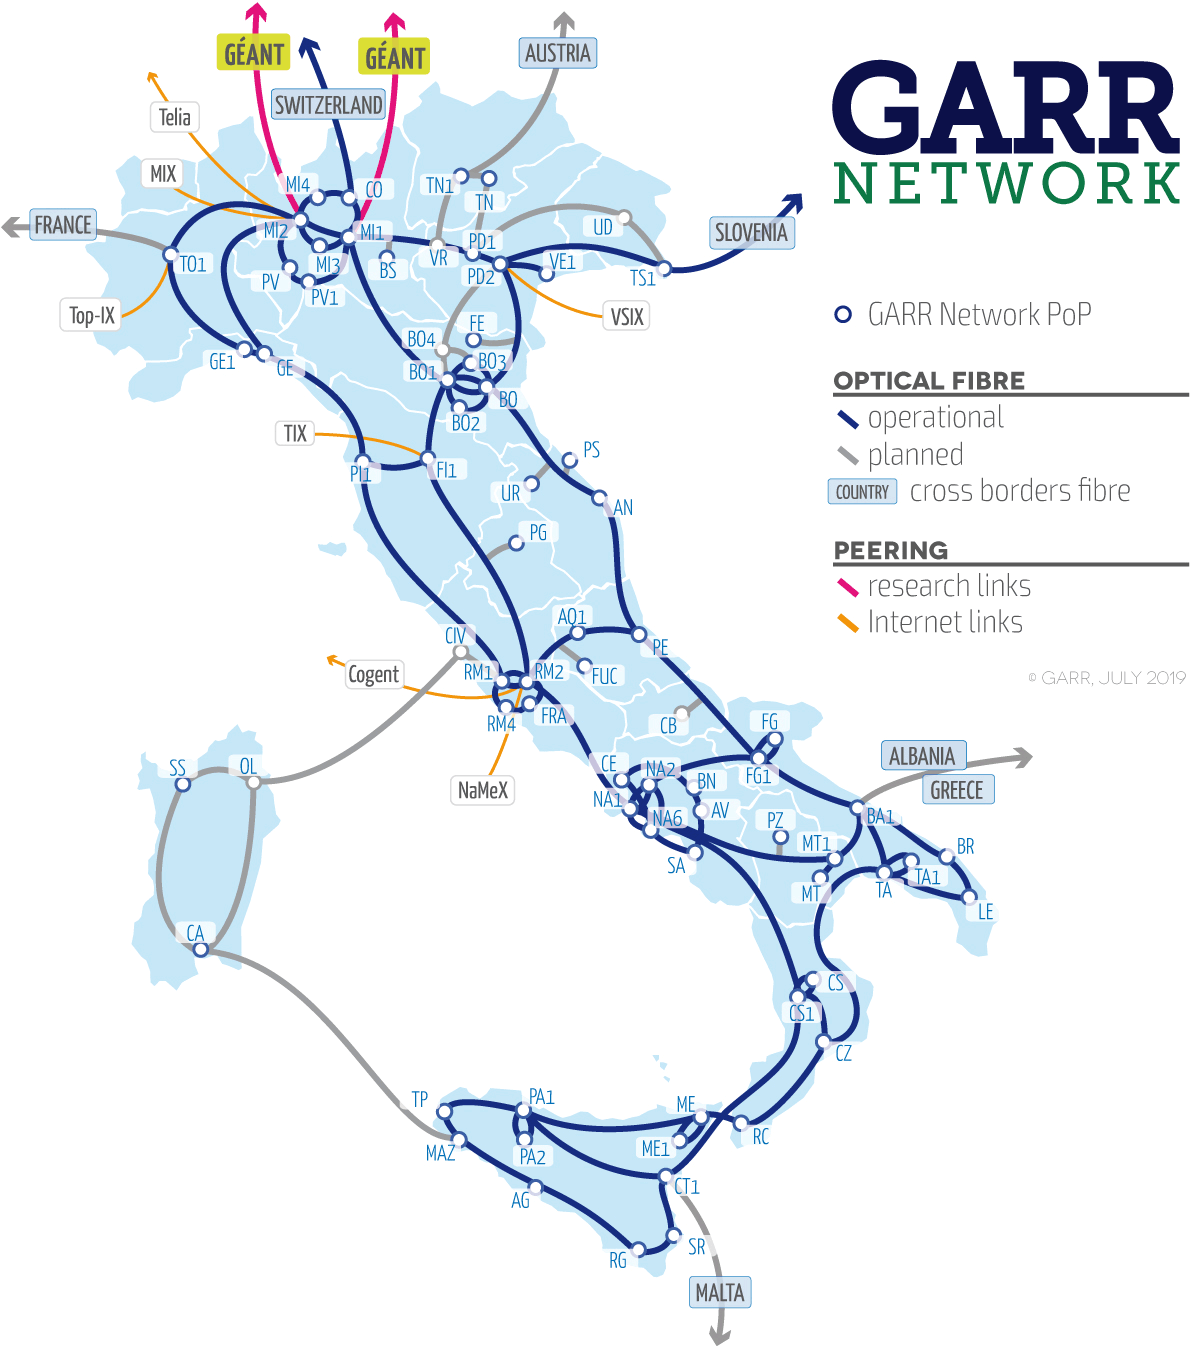 GARR Network Map